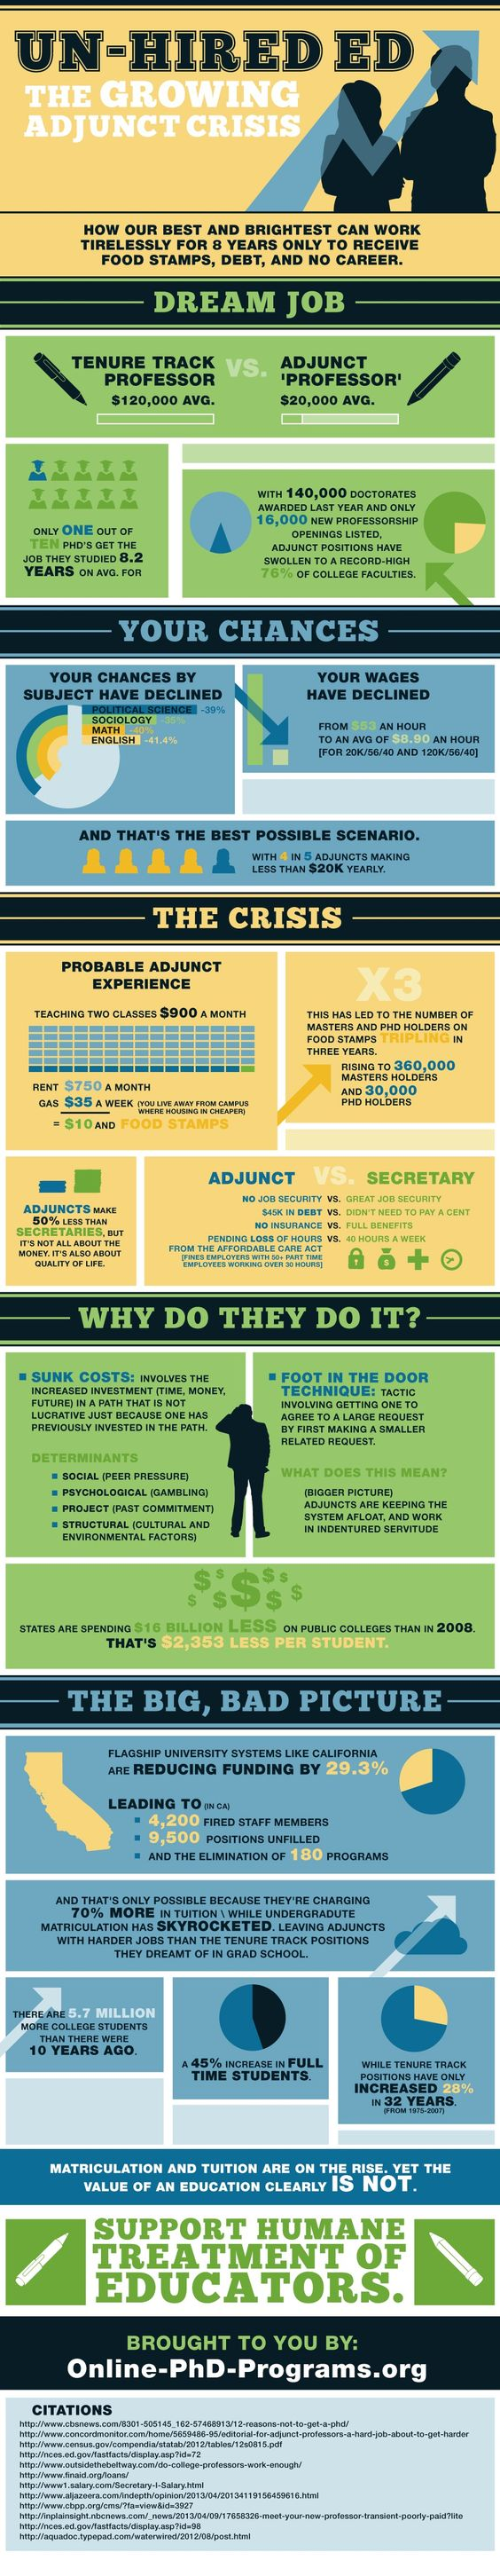 The adjunct crisis – an infographic | Progressive Geographies (Sep 13, 2013 by Farhang Erfani, Online-PhD-Programs.org) #phd